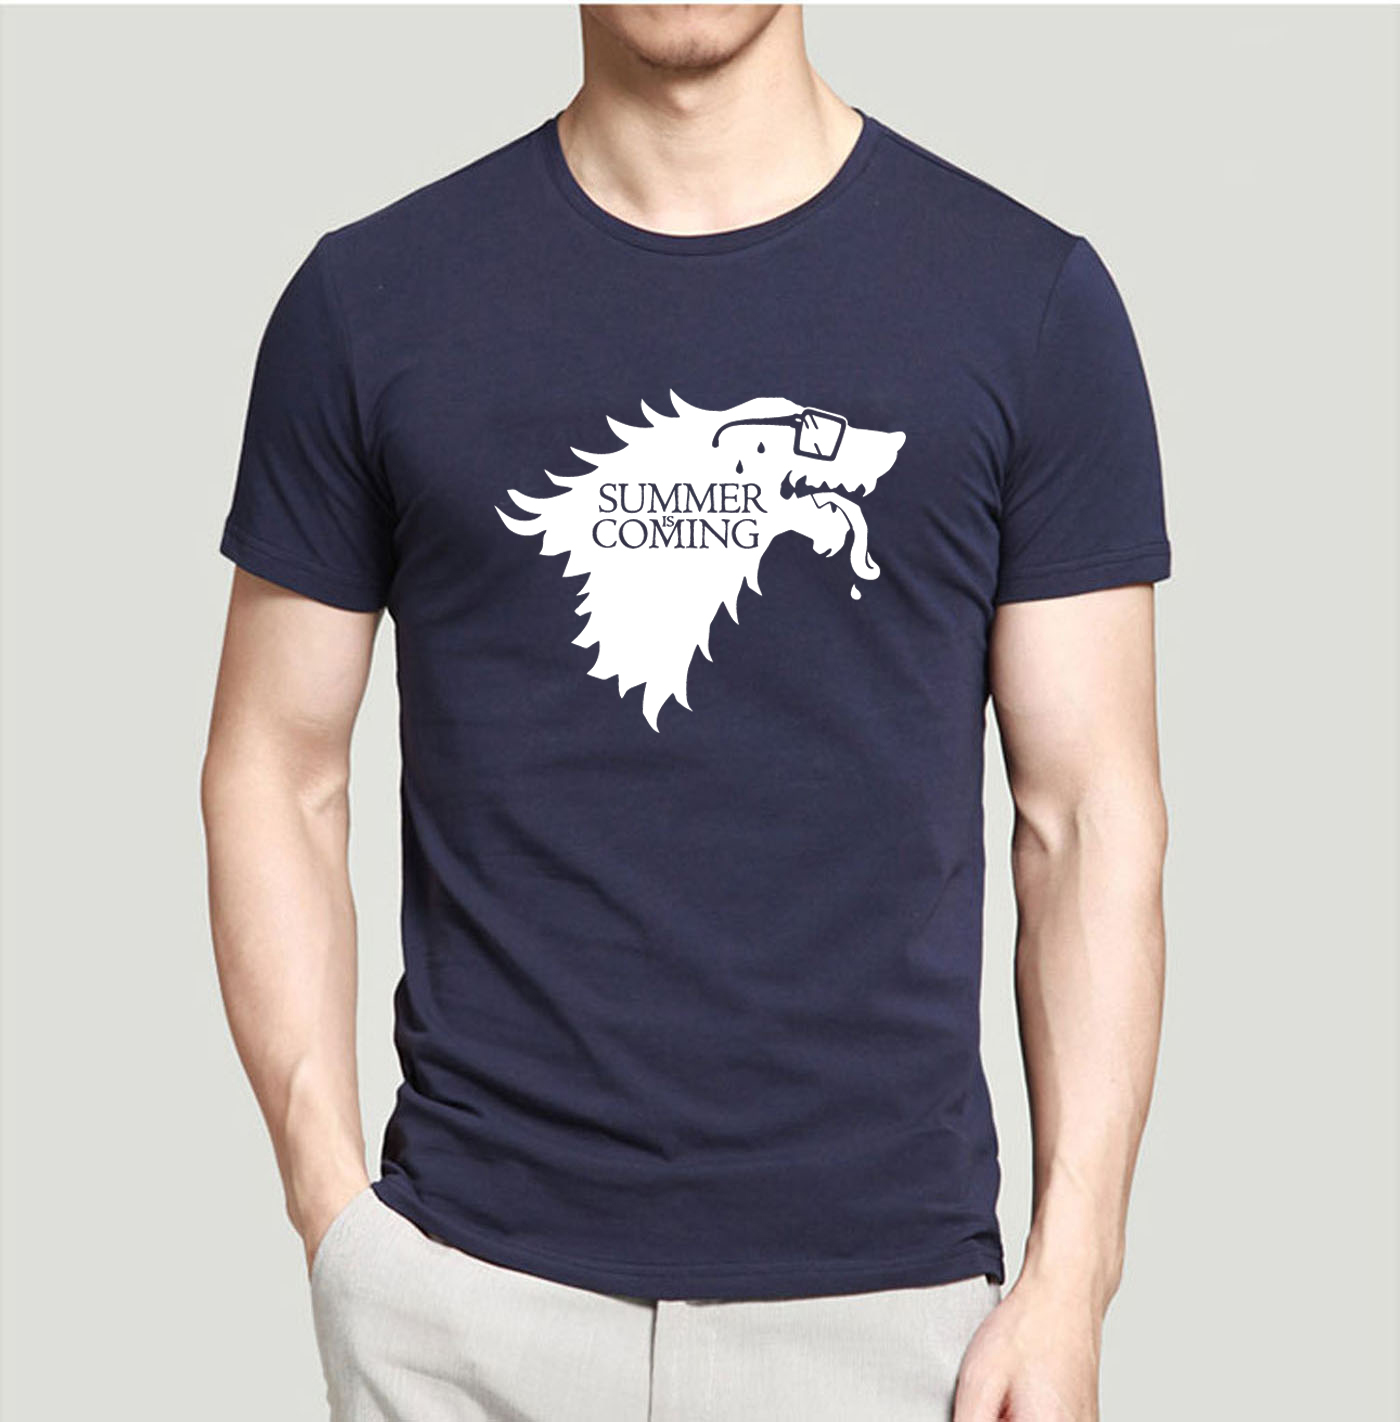 Creative   T     Shirts   Game Of Thrones Summer Is Coming Printed Funny   T  -  Shirts   2019 New Summer 100% Cotton Men Tops Tees For Fans